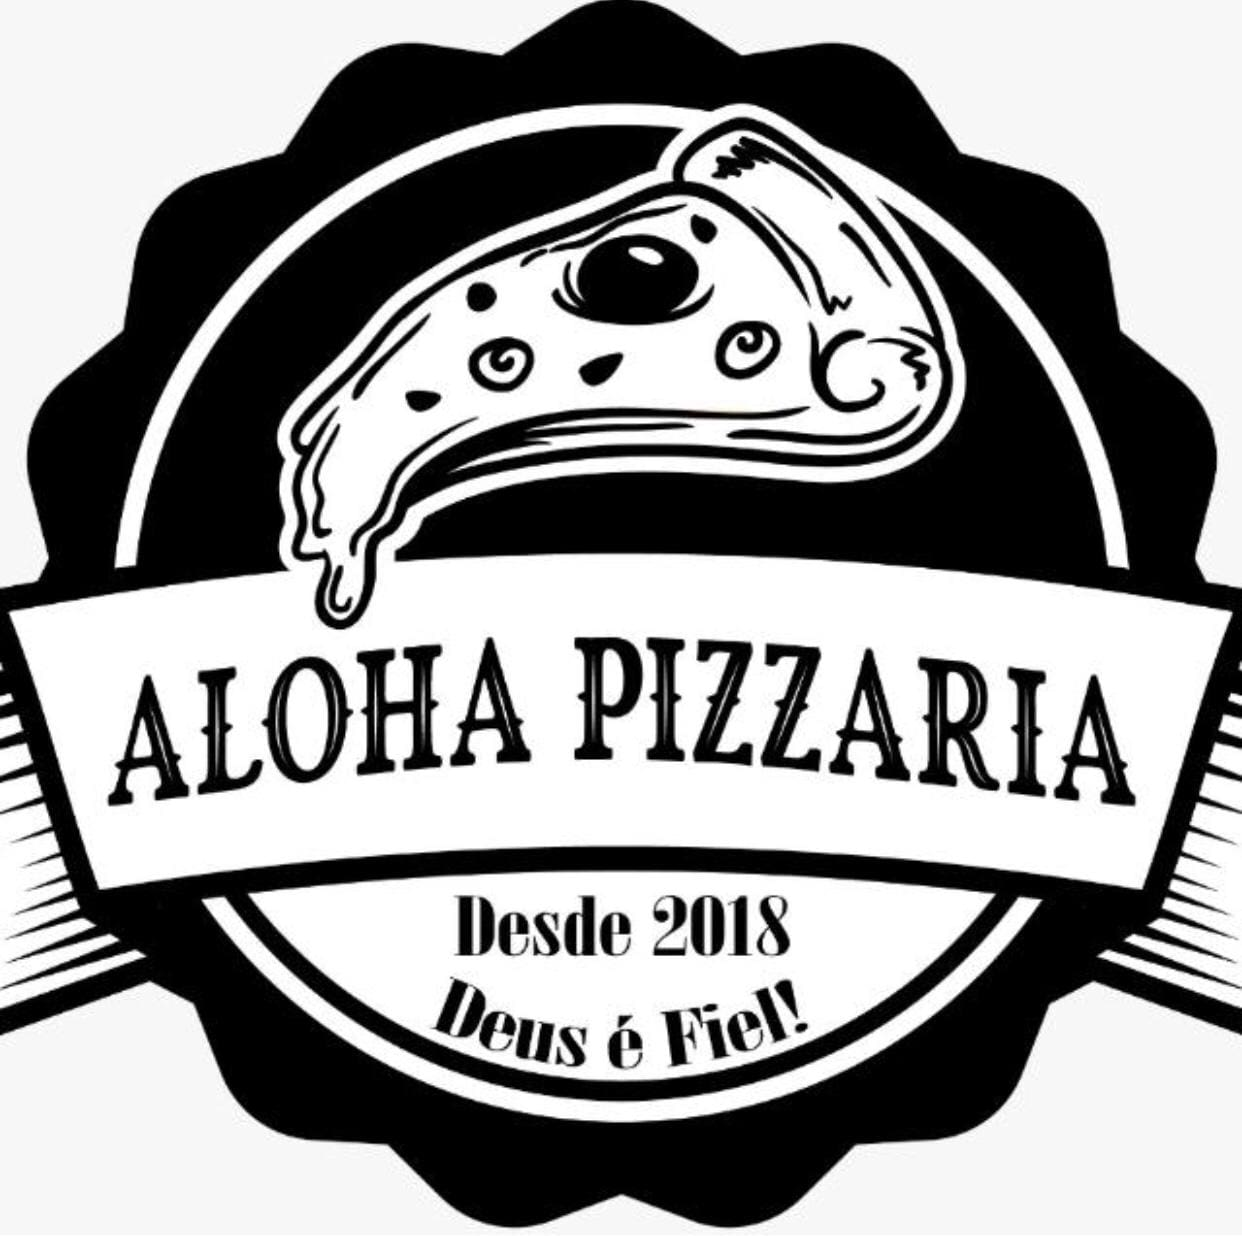 Aloha!! Pizzaria Delivery